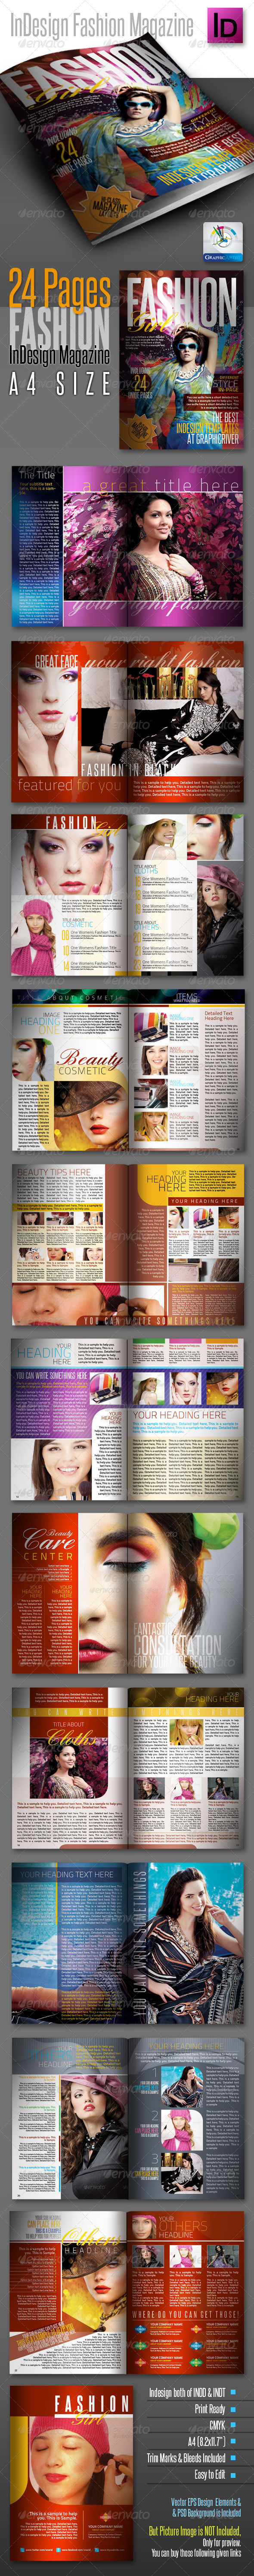 GraphicRiver FashionGirl InDesign Modern Magazine 24pages 1837309